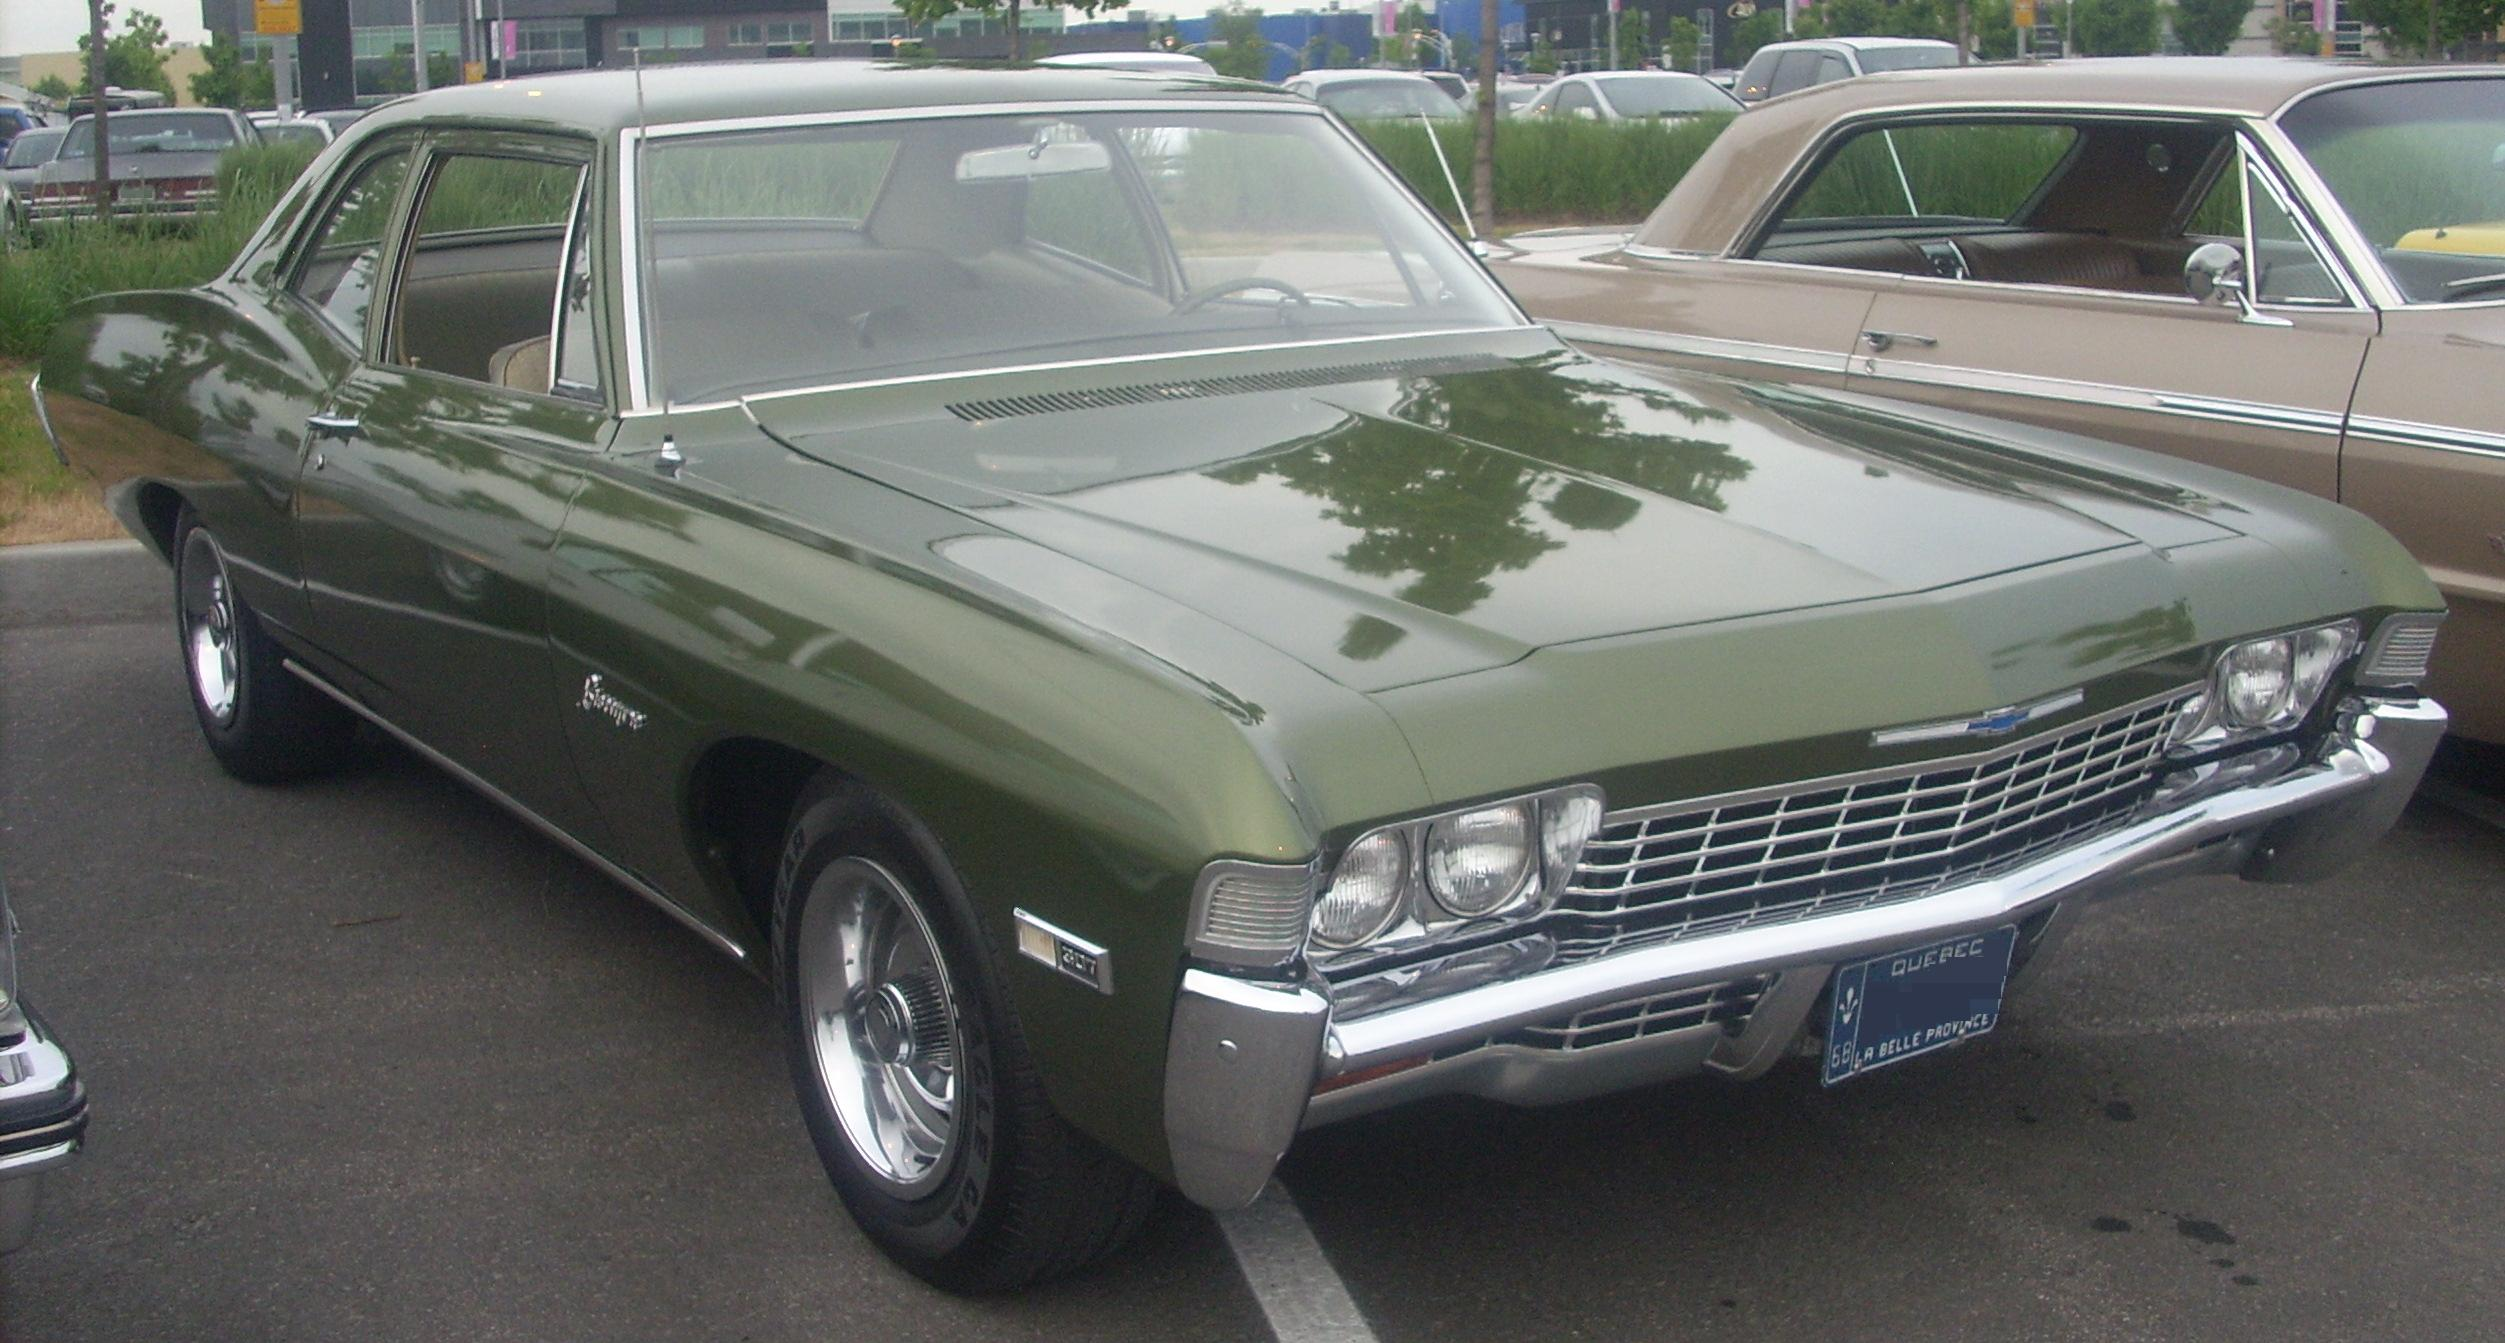 File:'68 Chevrolet Biscayne Coupe (Centropolis Laval '10).jpg